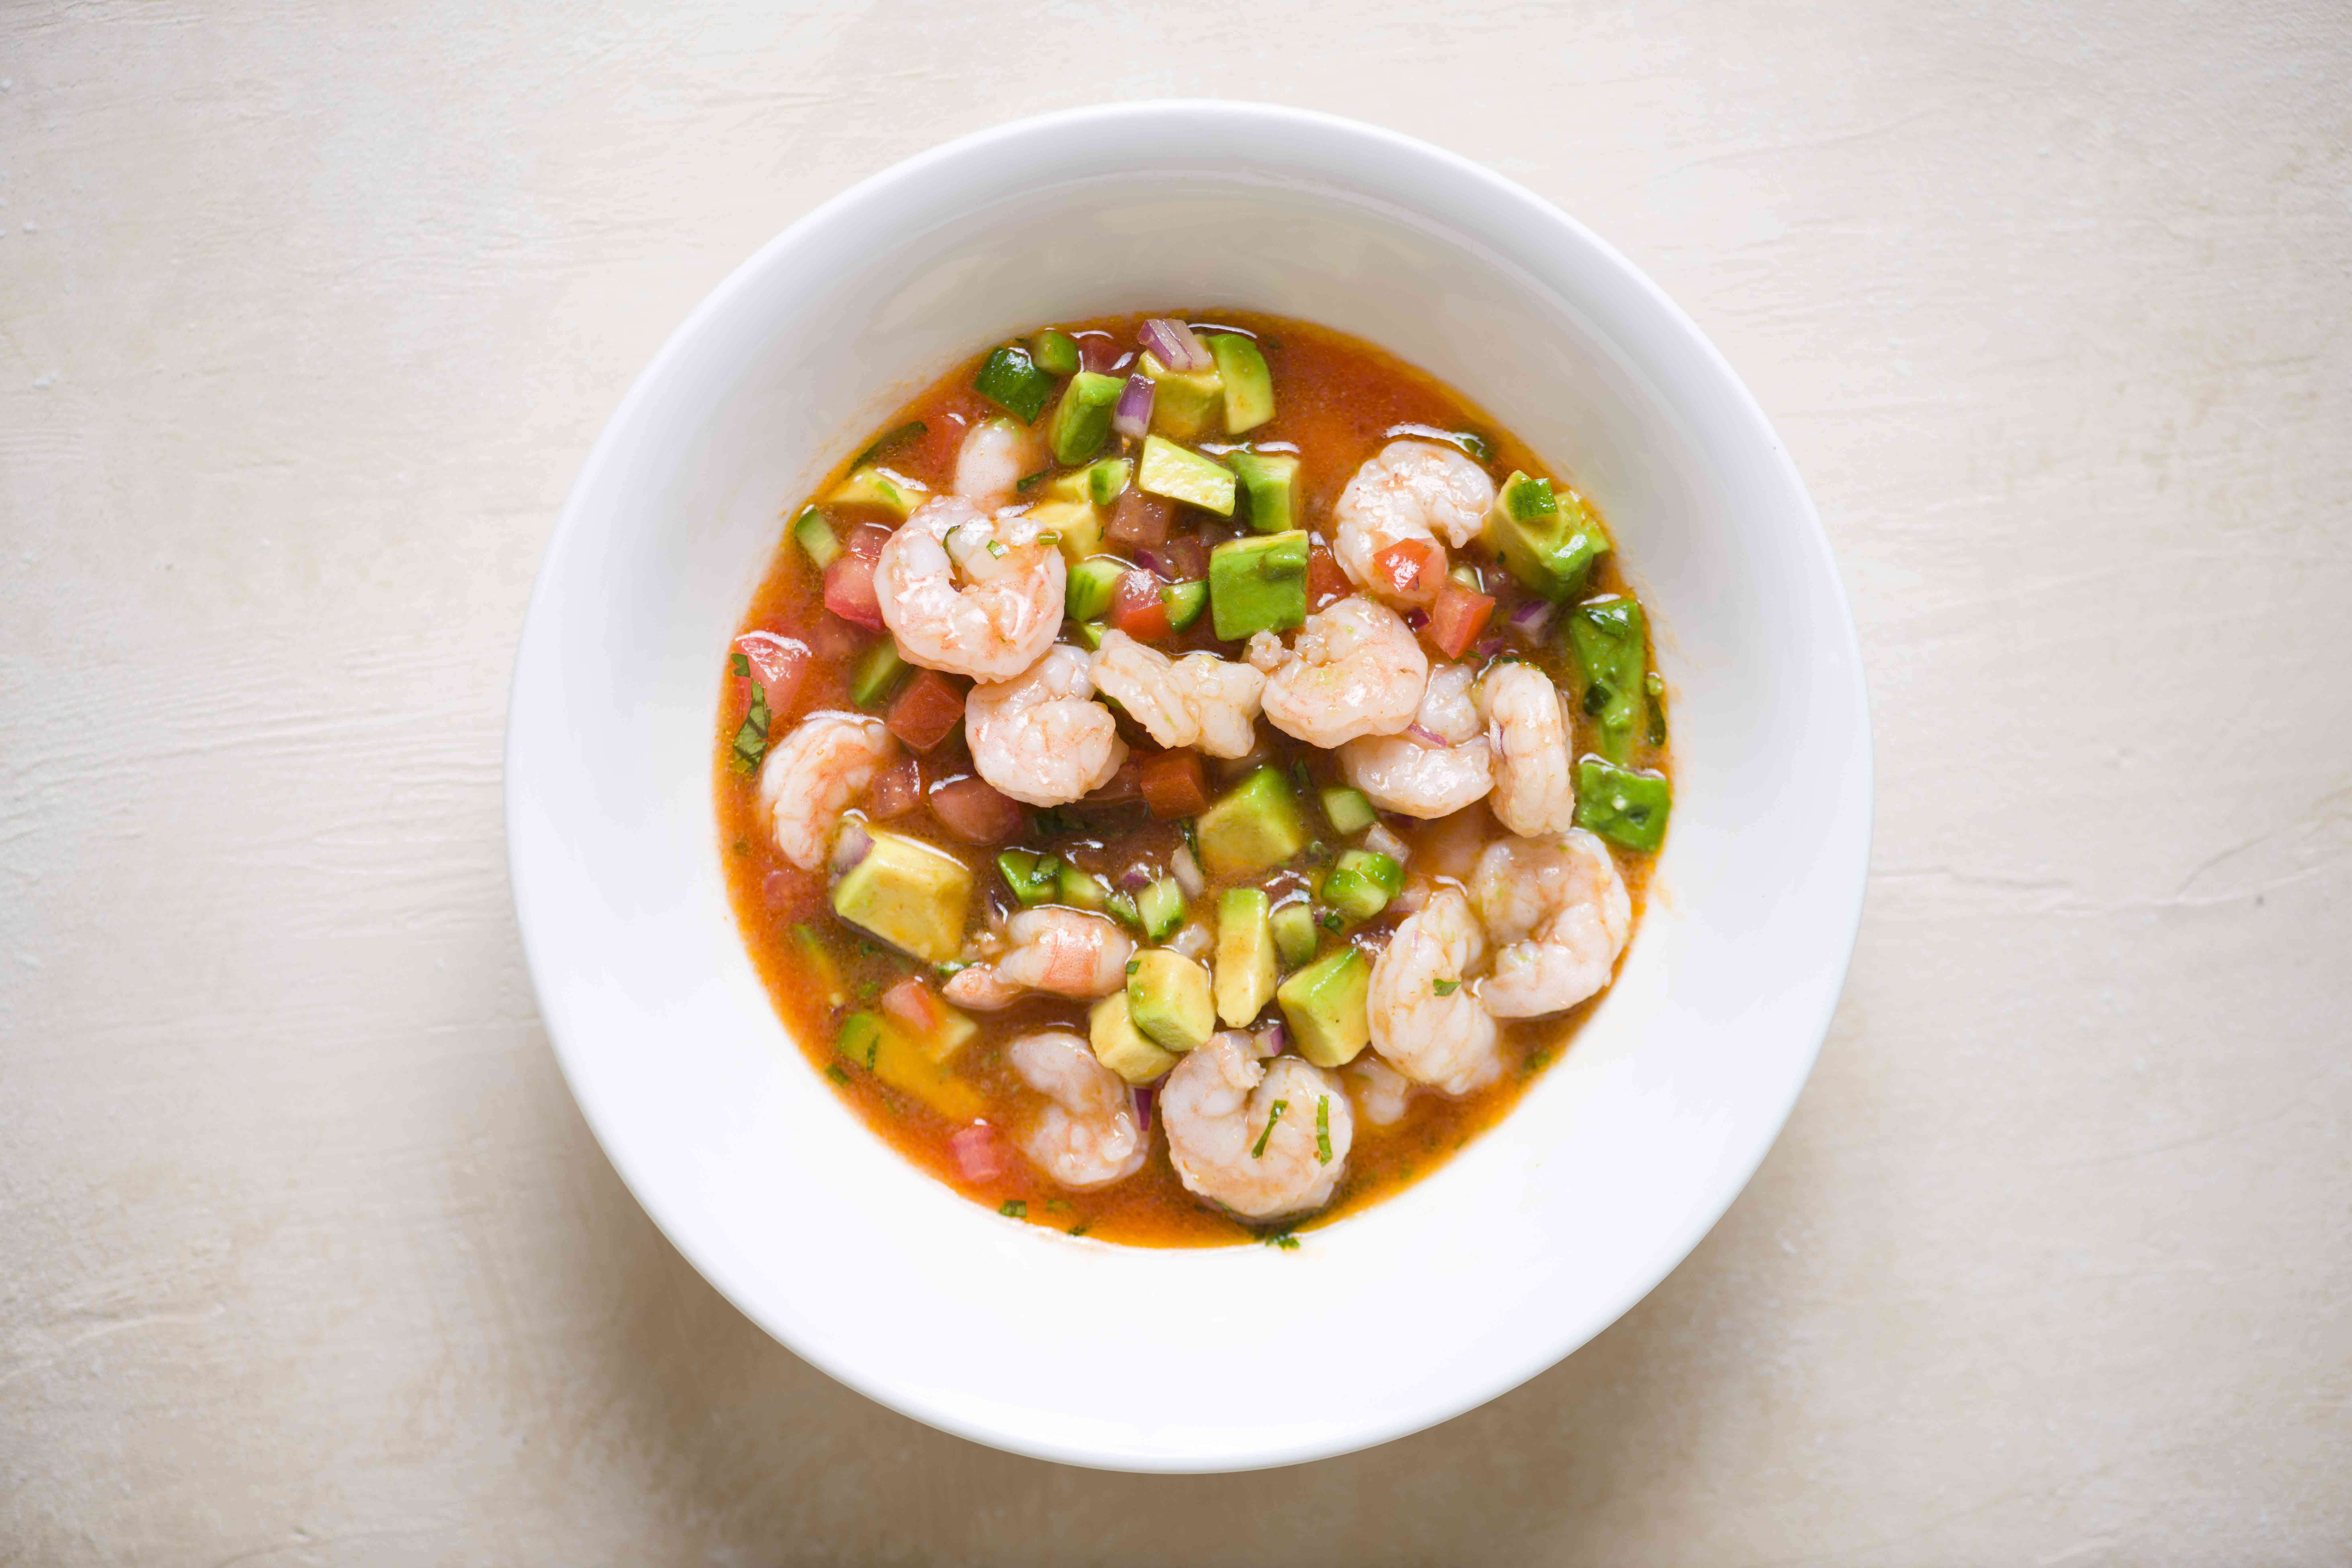 ceviche in a bowl with sauce